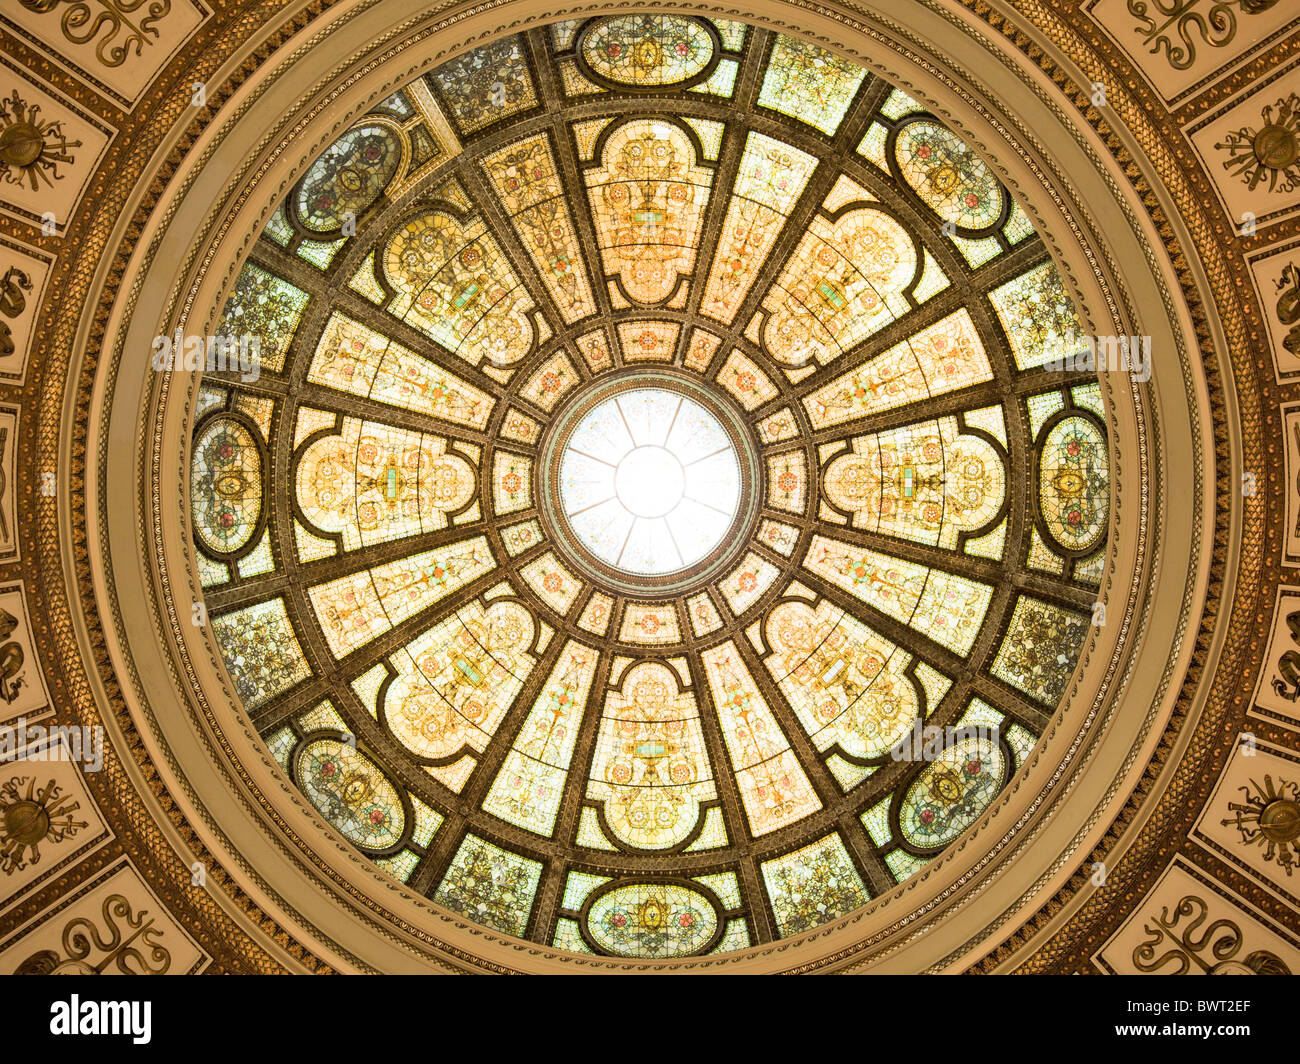 Healy Millet Stained glass Dome, Chicago Cultural Center, Illinois - Stock Image